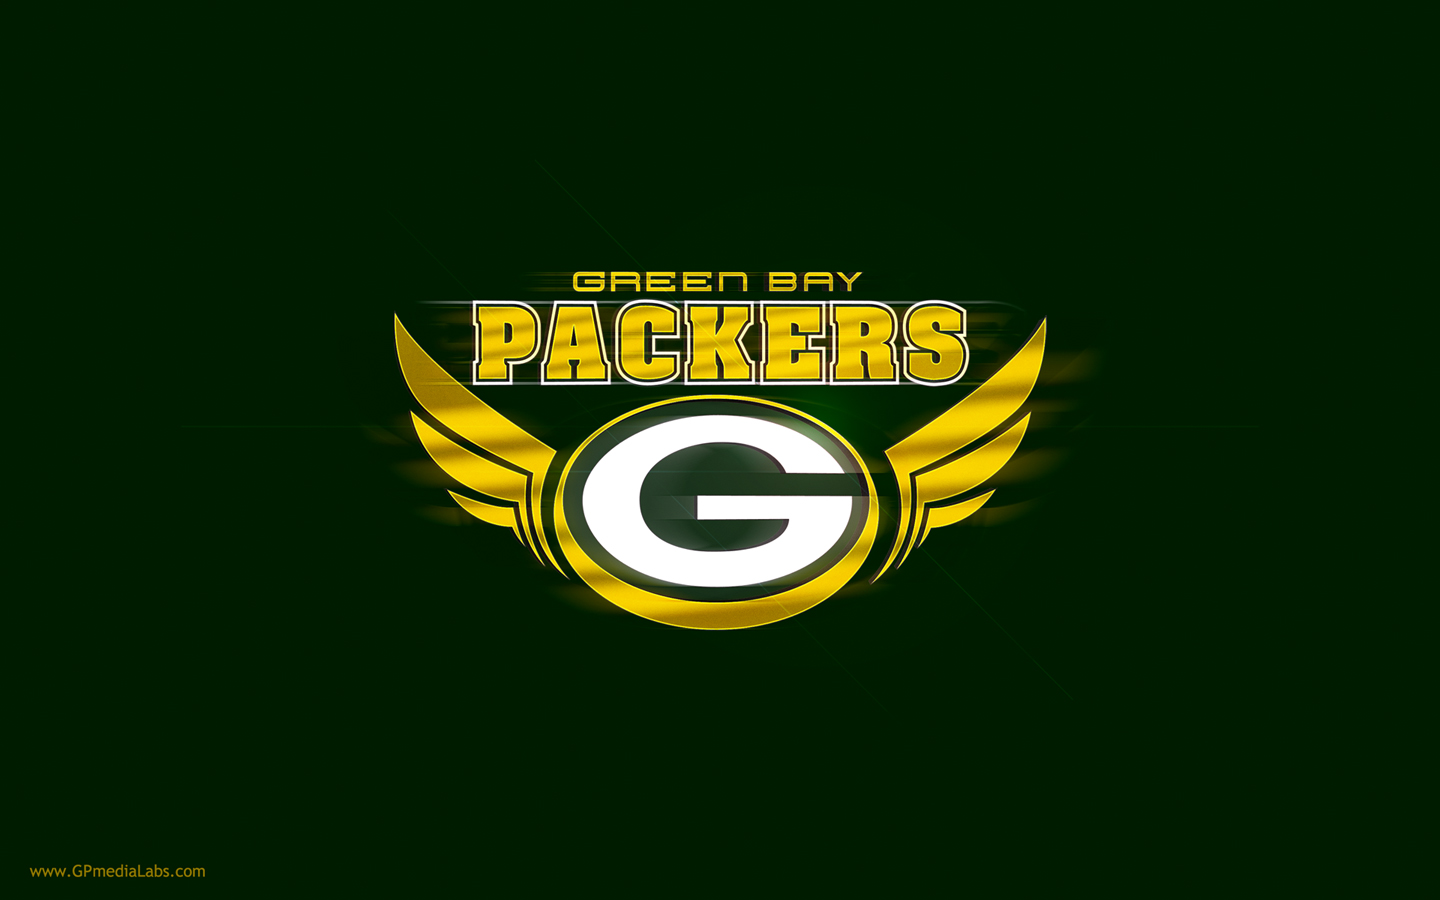 Download wallpaper: 1440 x 900 • 1920x1200 • 2560 x 1600. Green Bay ...